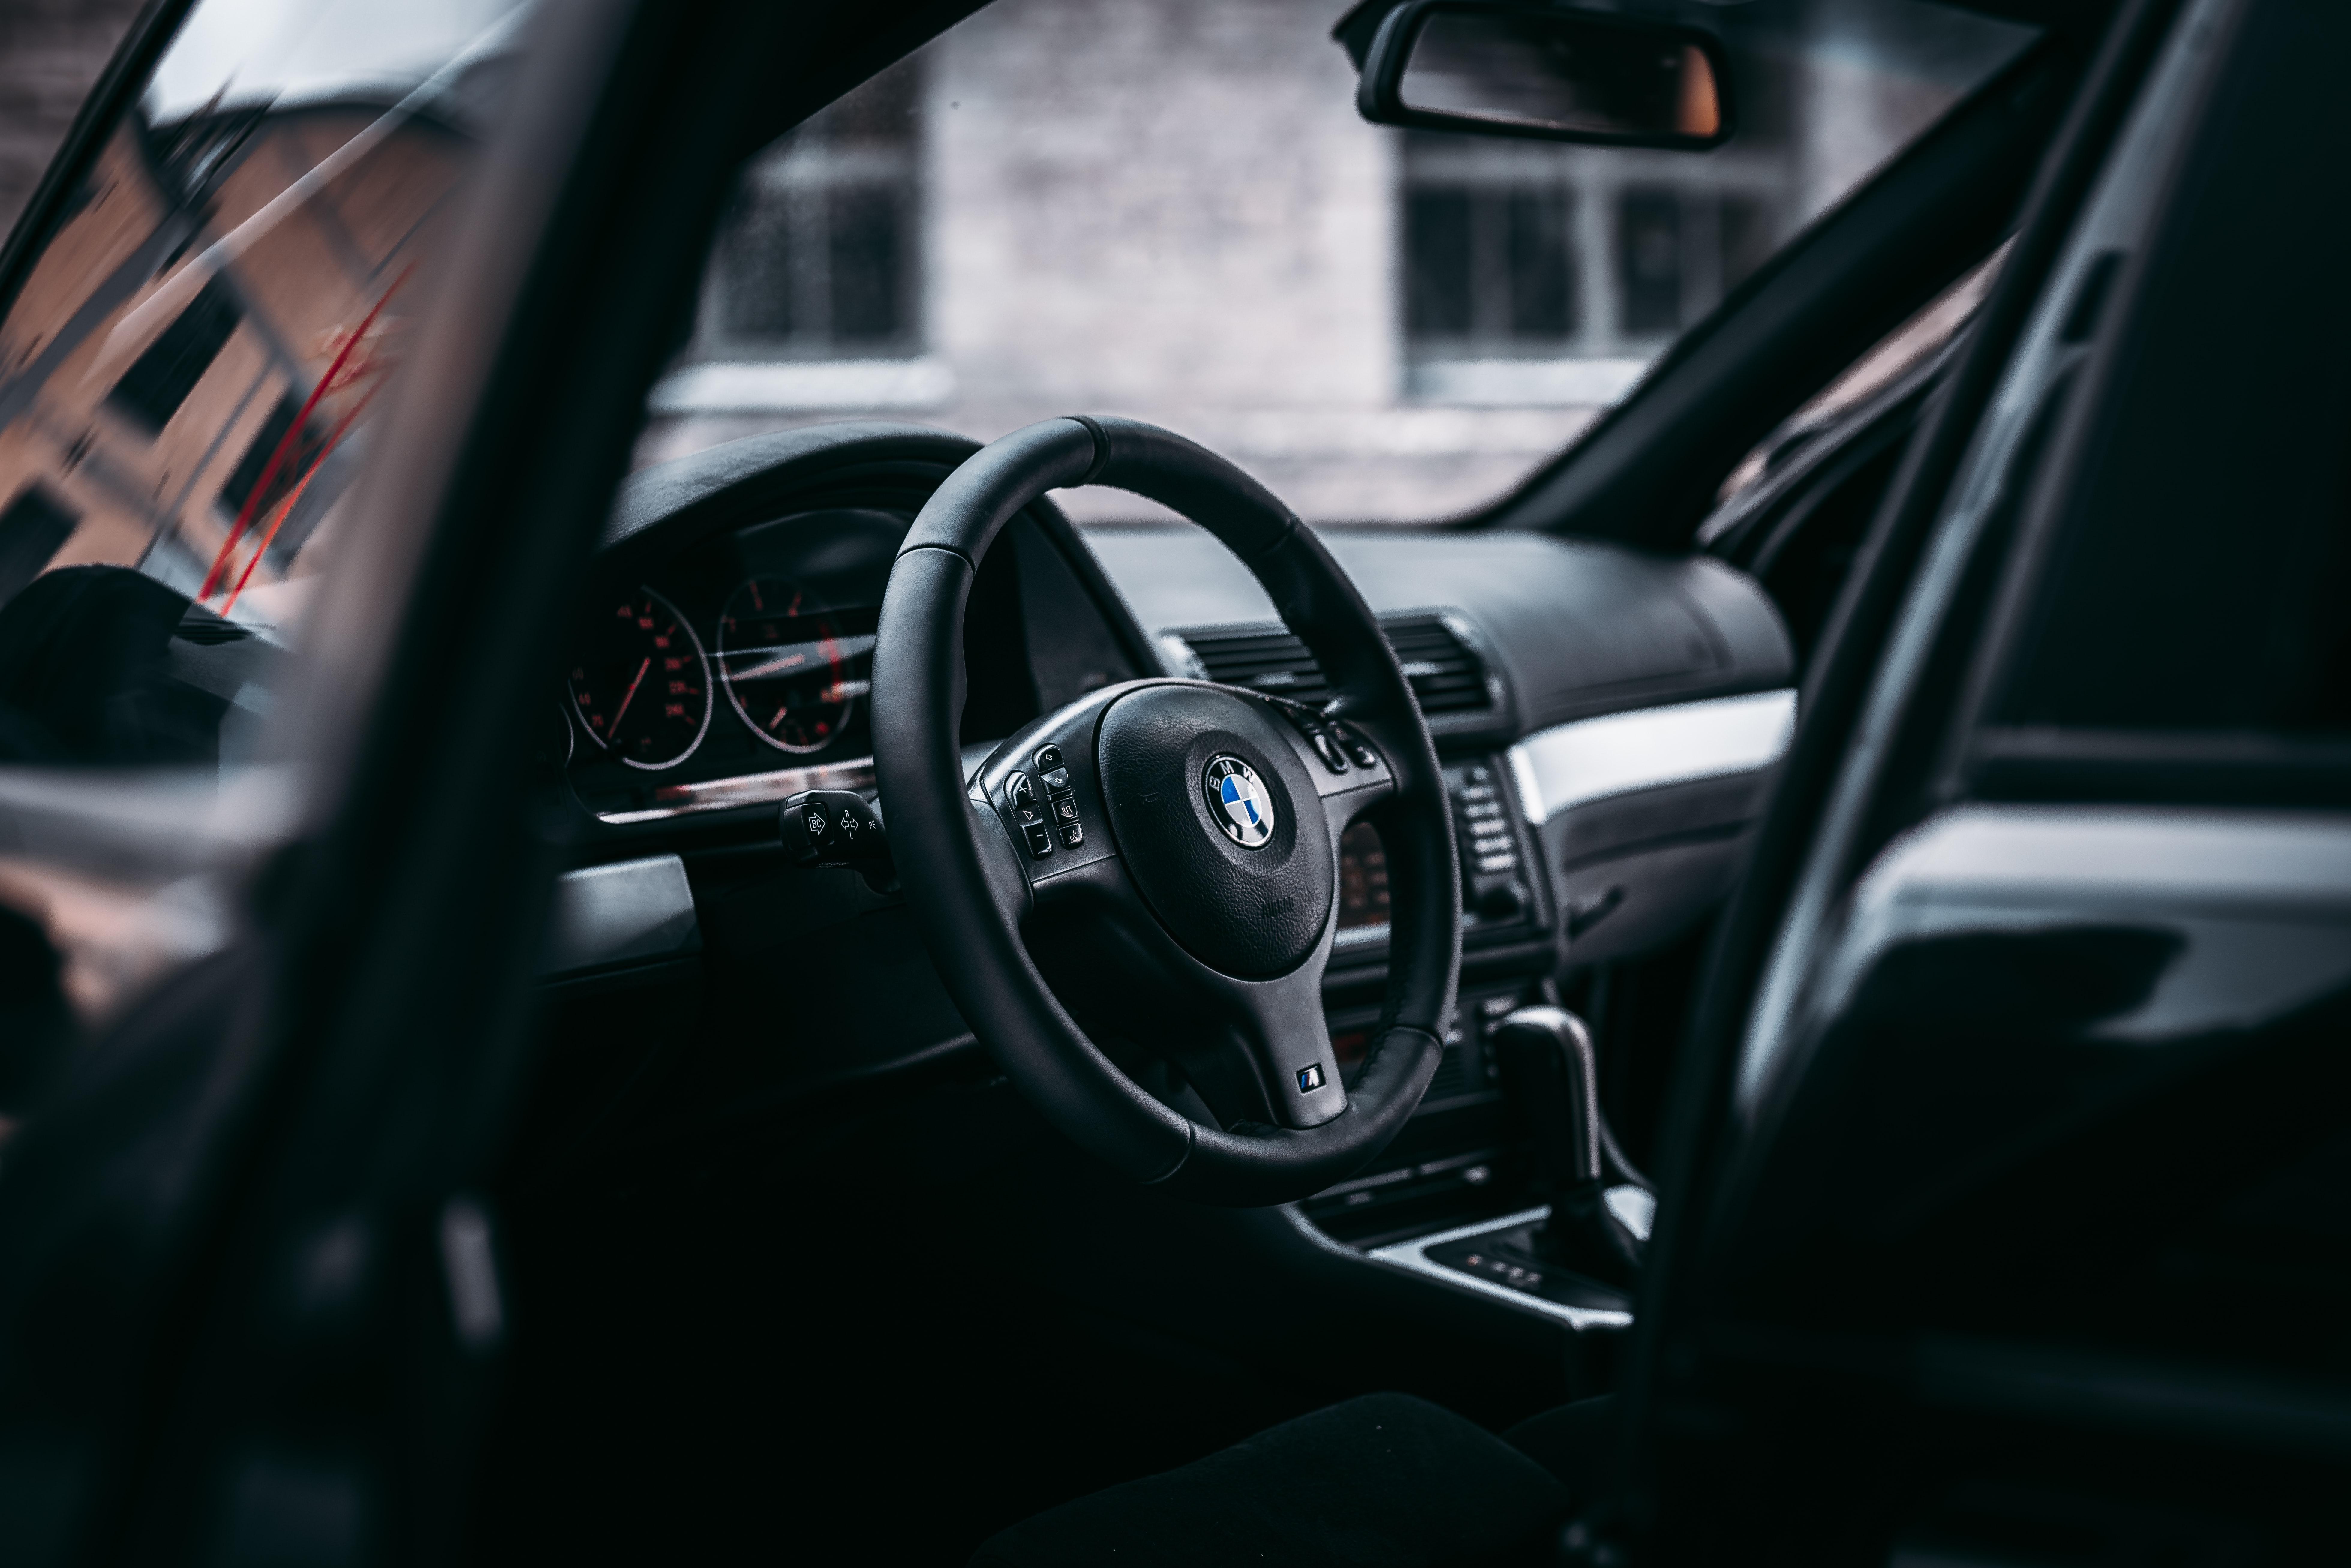 black and gray Volkswagen car interior